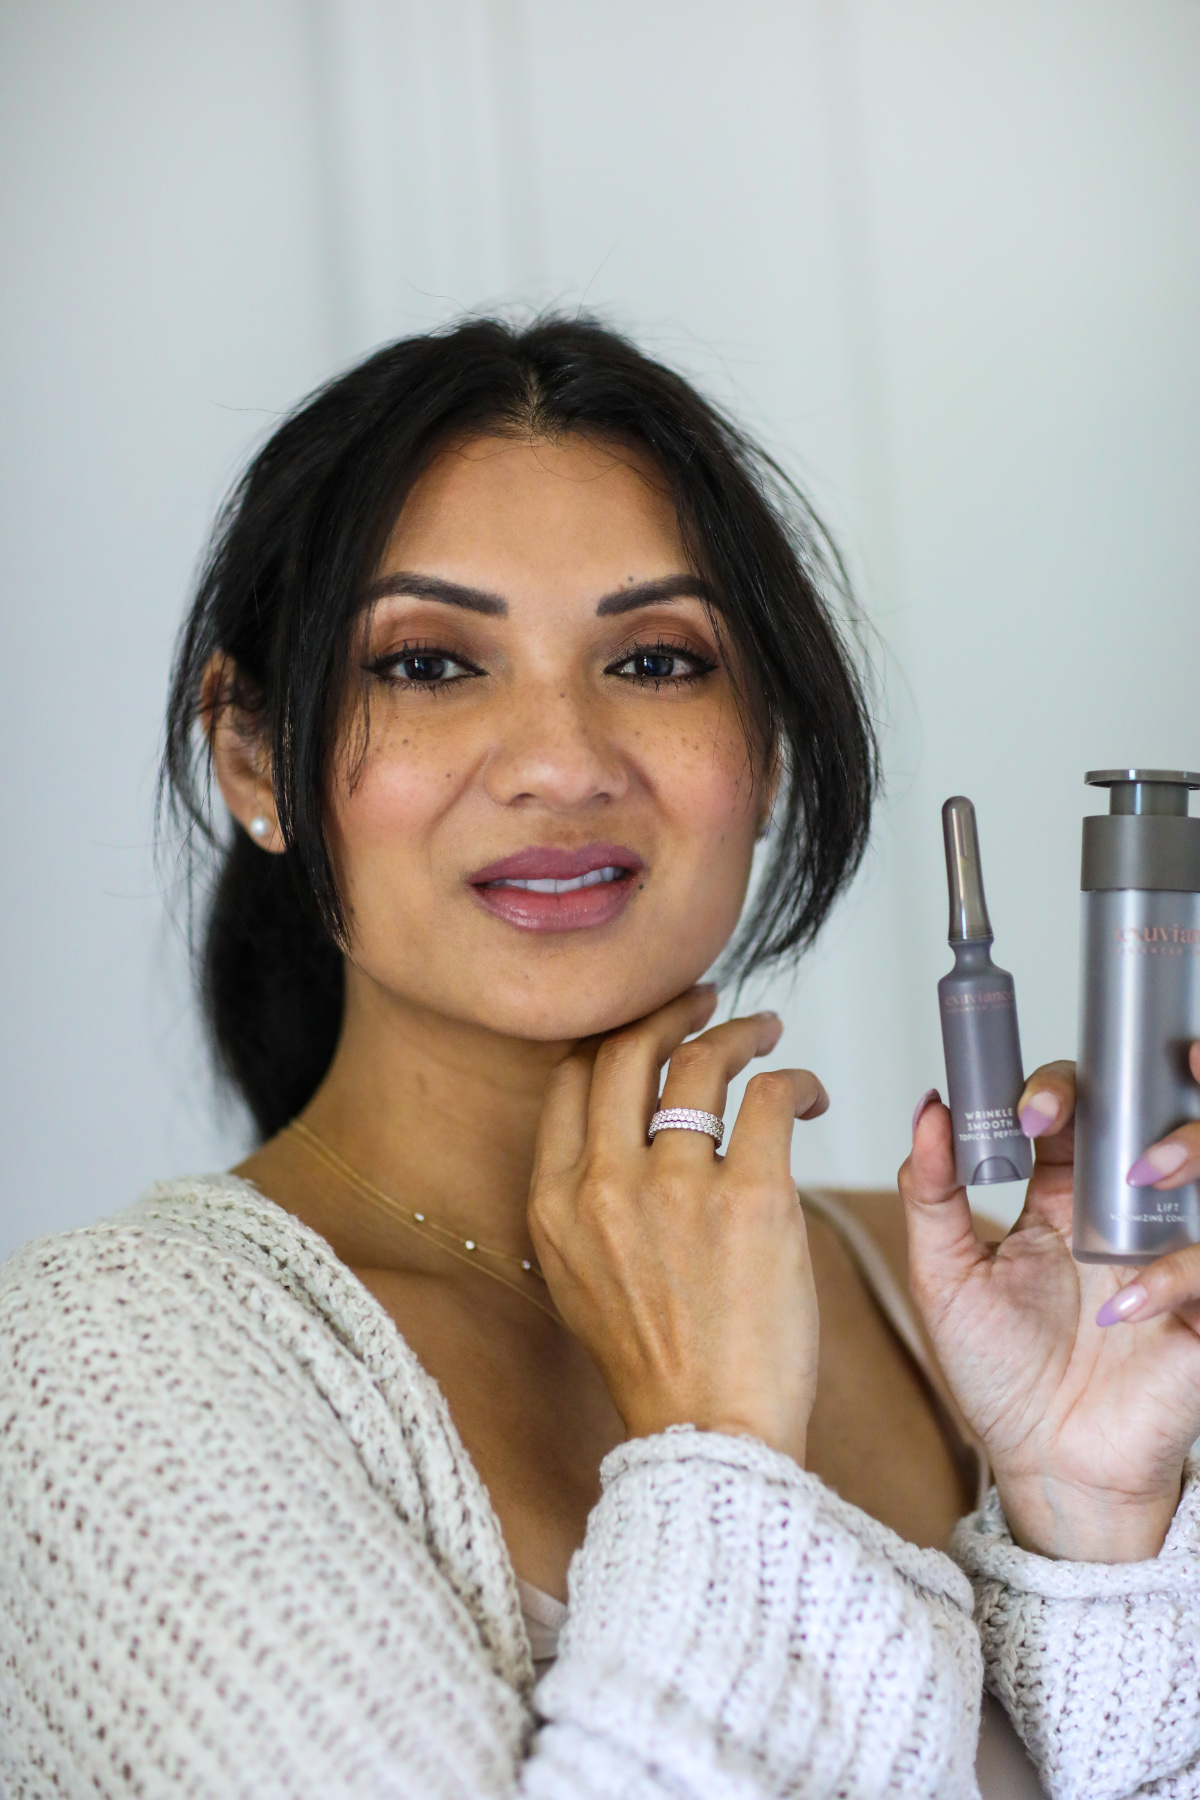 Looking for the perfect anti-aging skincare routine? Orange County Blogger Debbe Savage is sharing her favorite anti-aging skincare routine here!